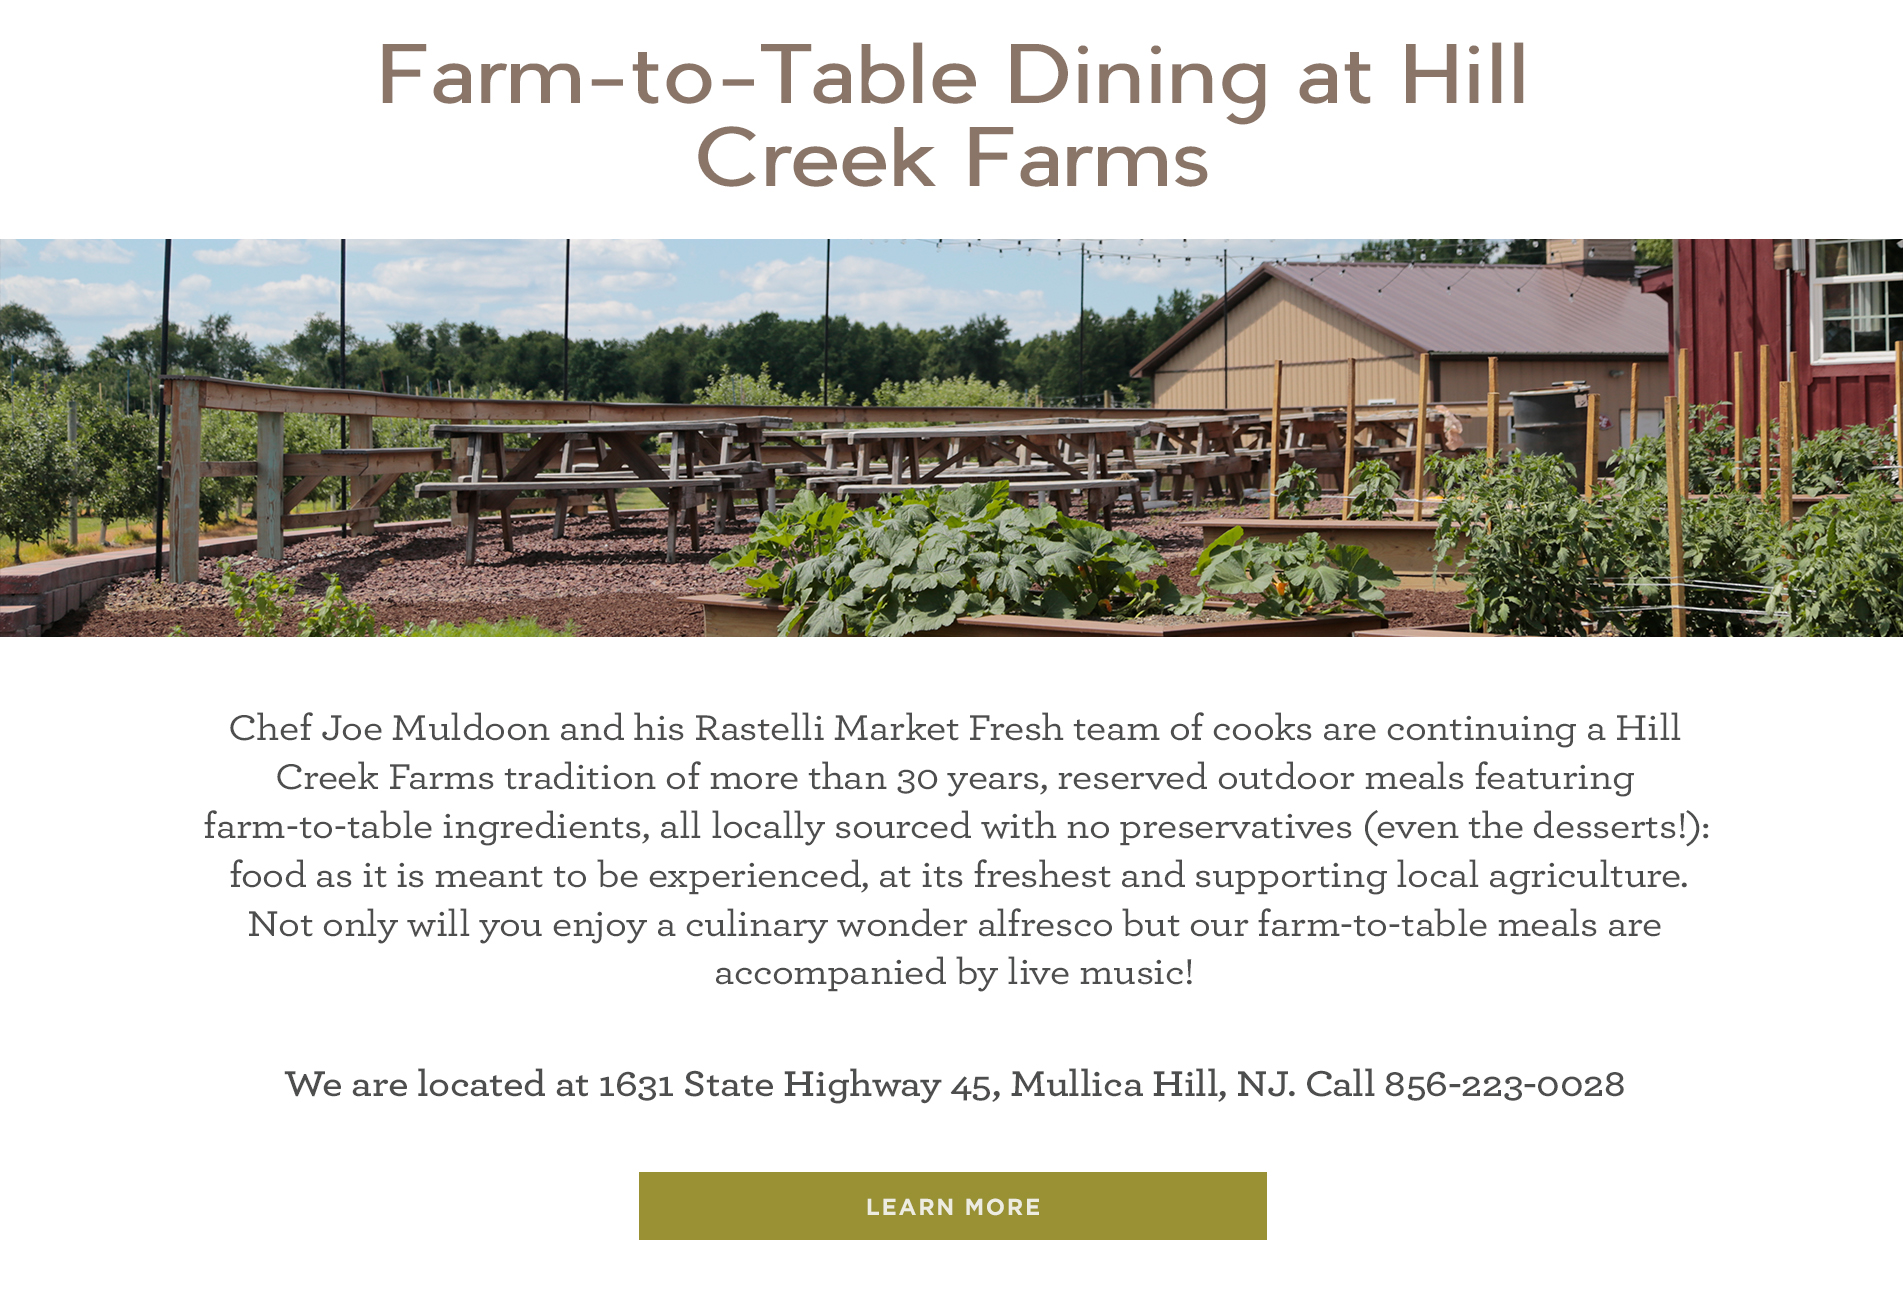 Farm-to-Table Dining at Hill Creek Farms